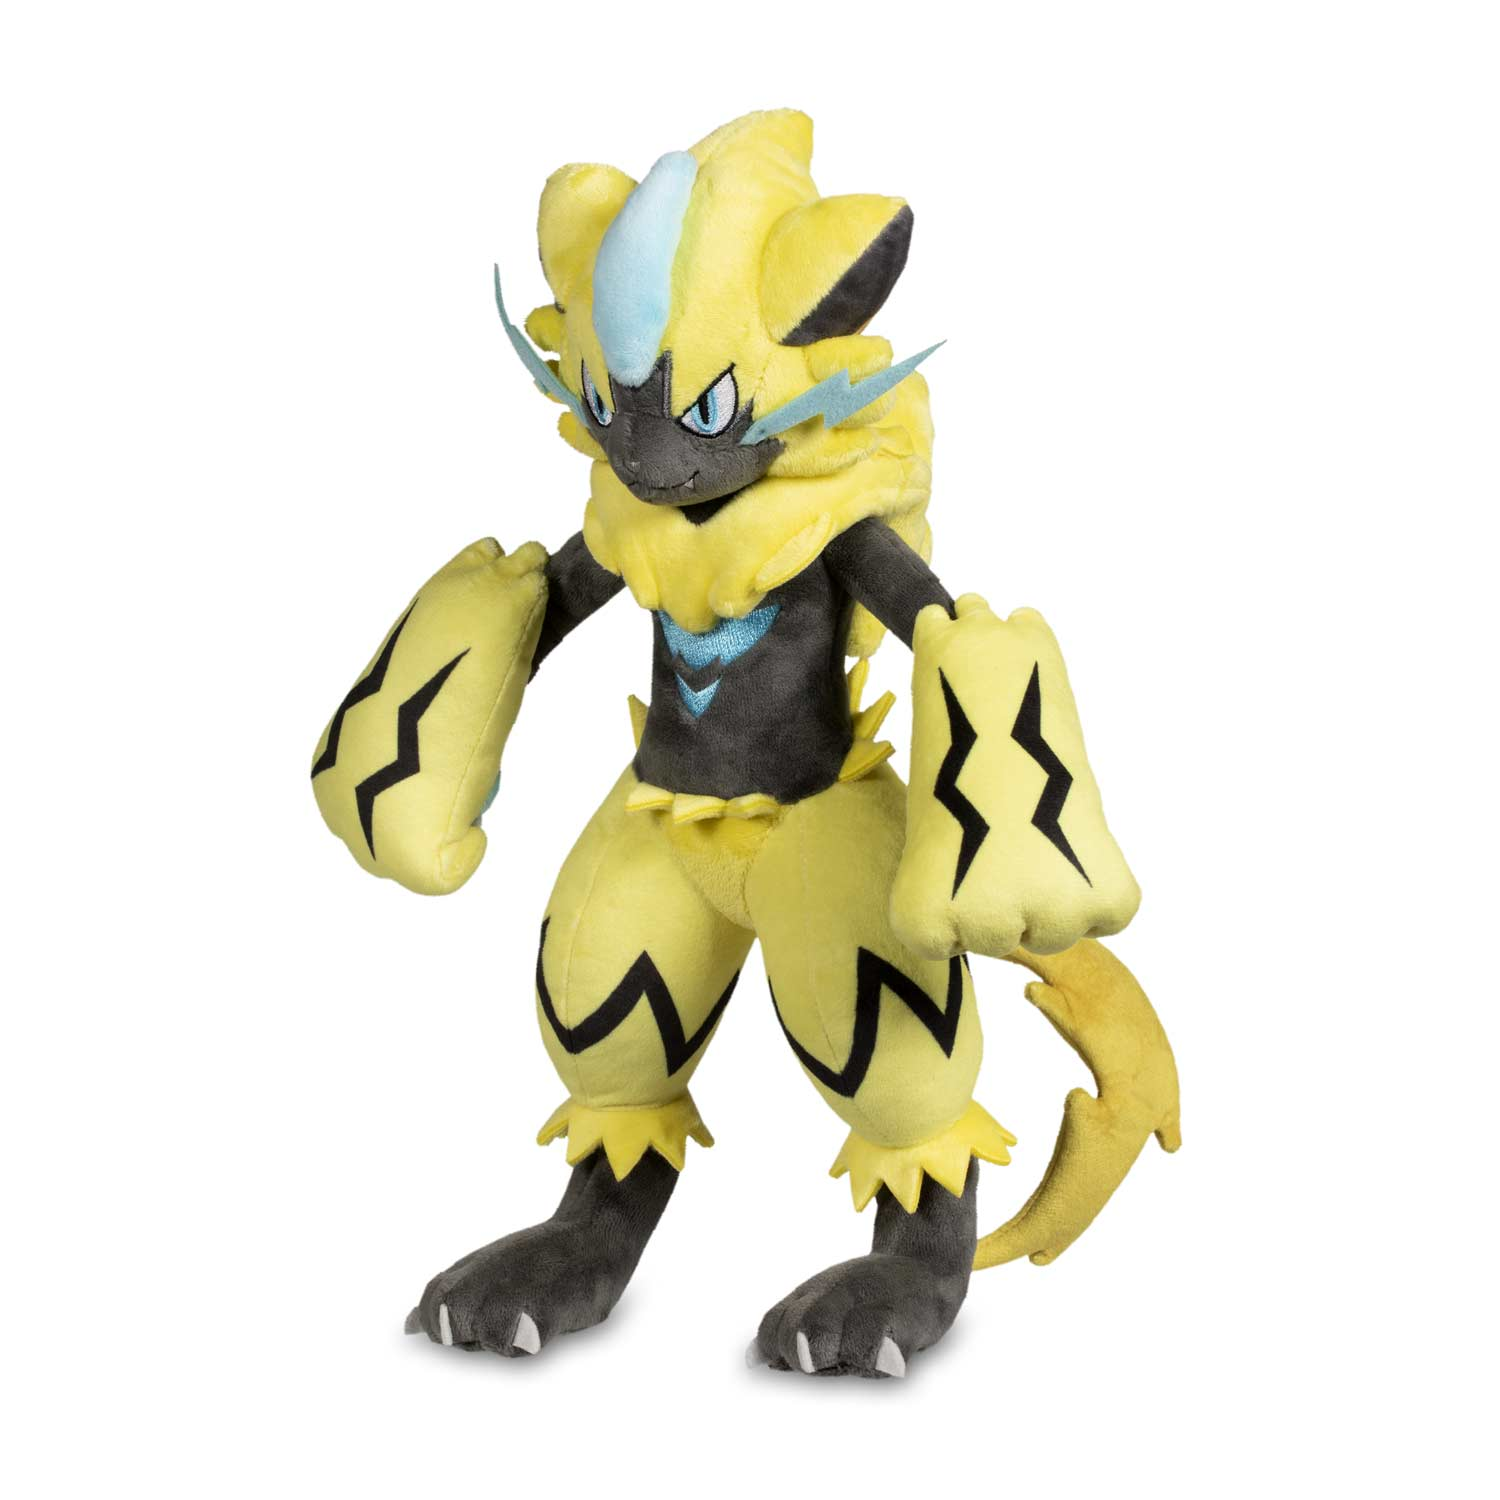 Zeraora Poké Plush - 13 1/2 In. | Pokémon Center Original